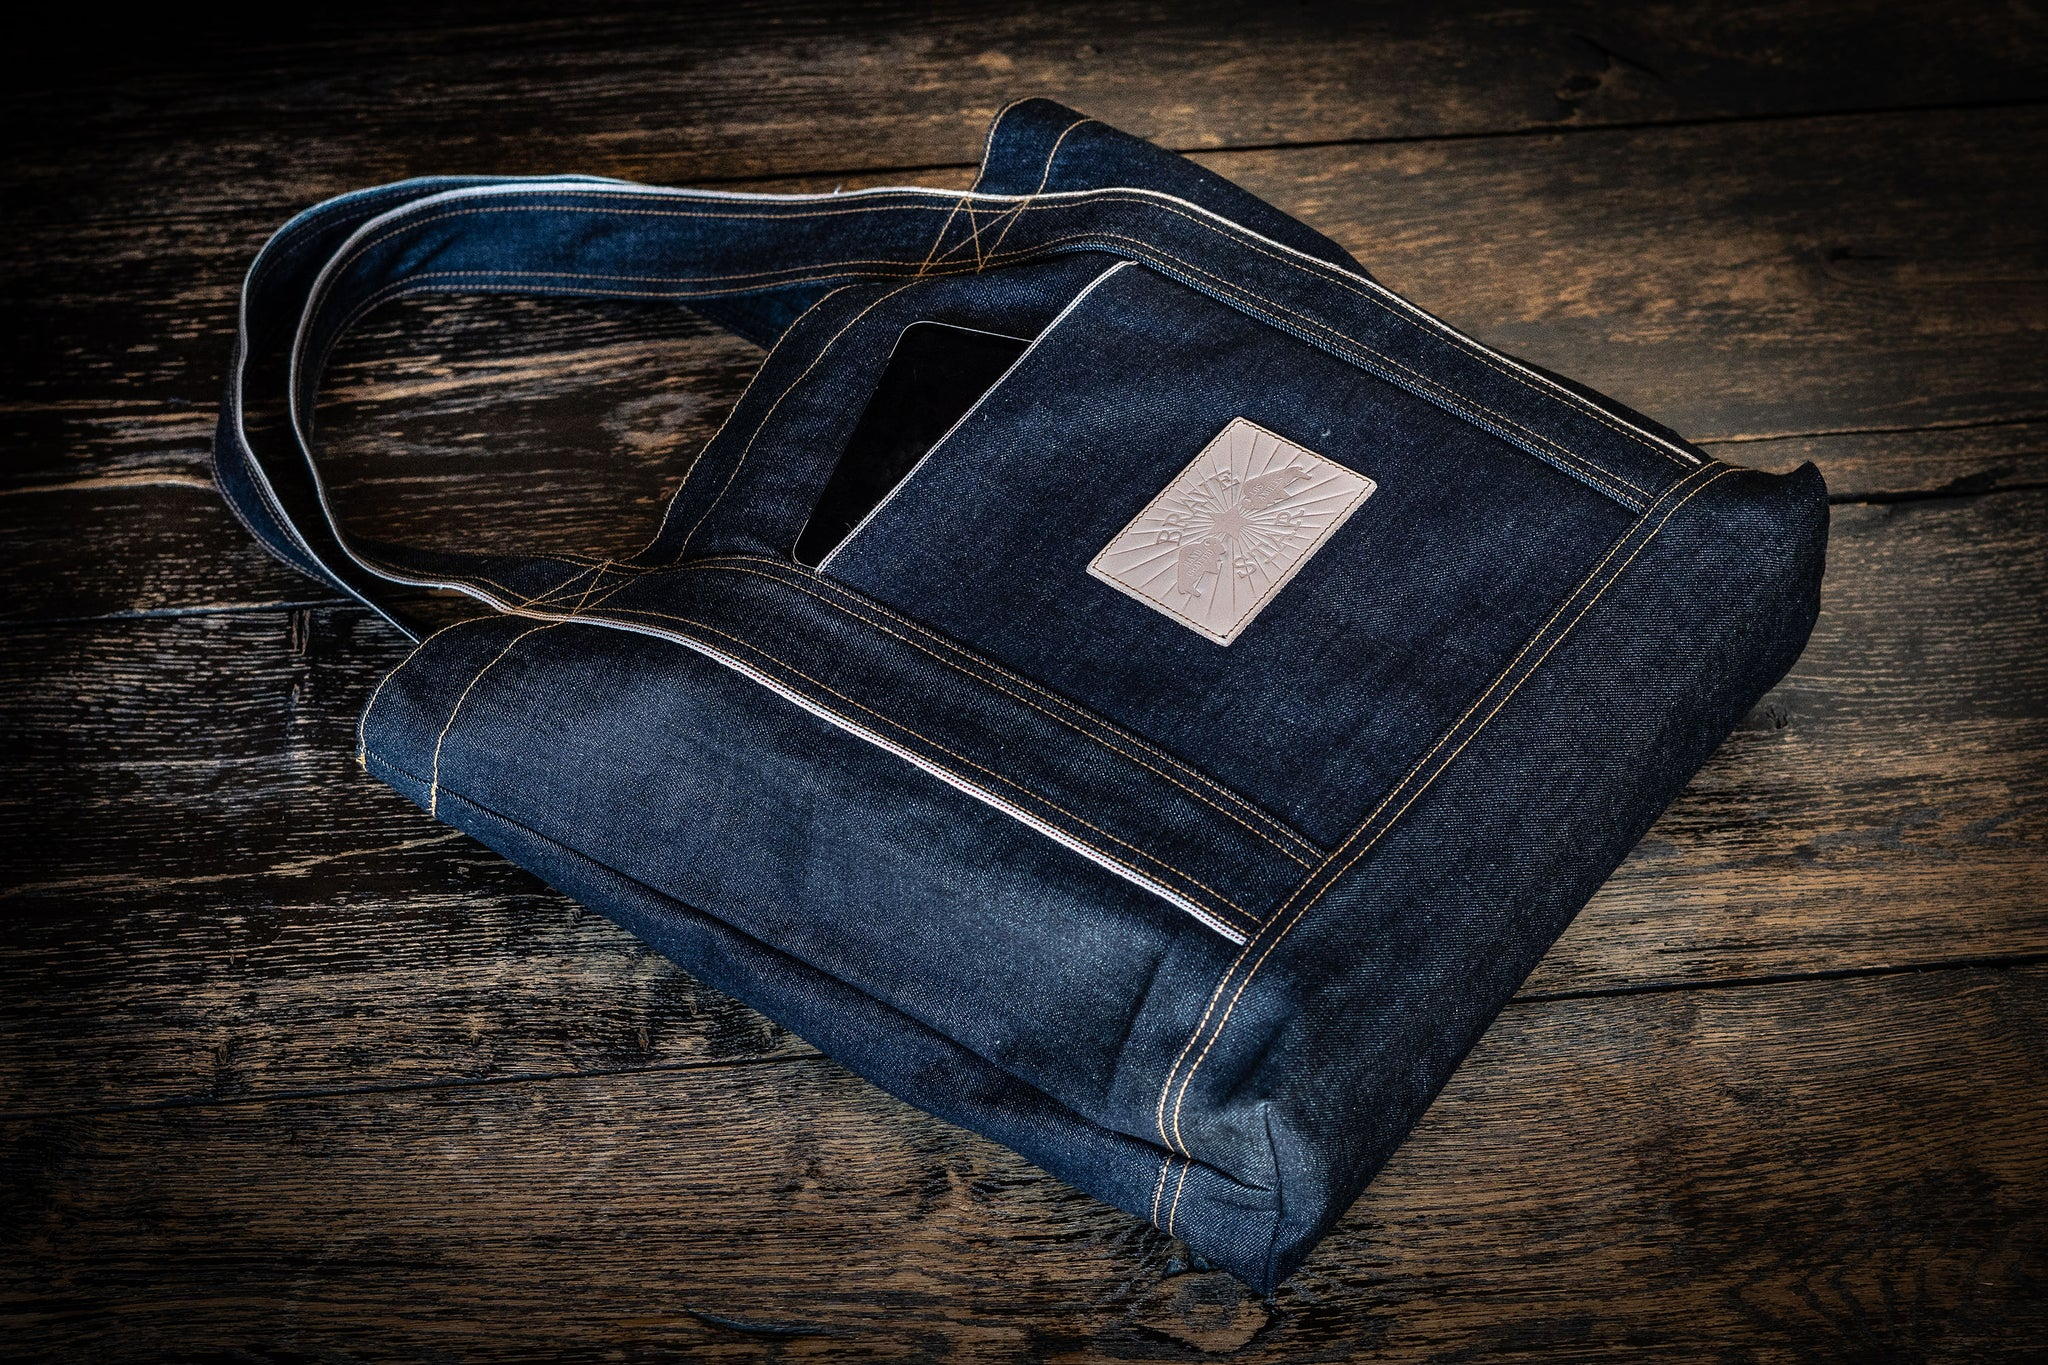 The Blue Collar Carryall